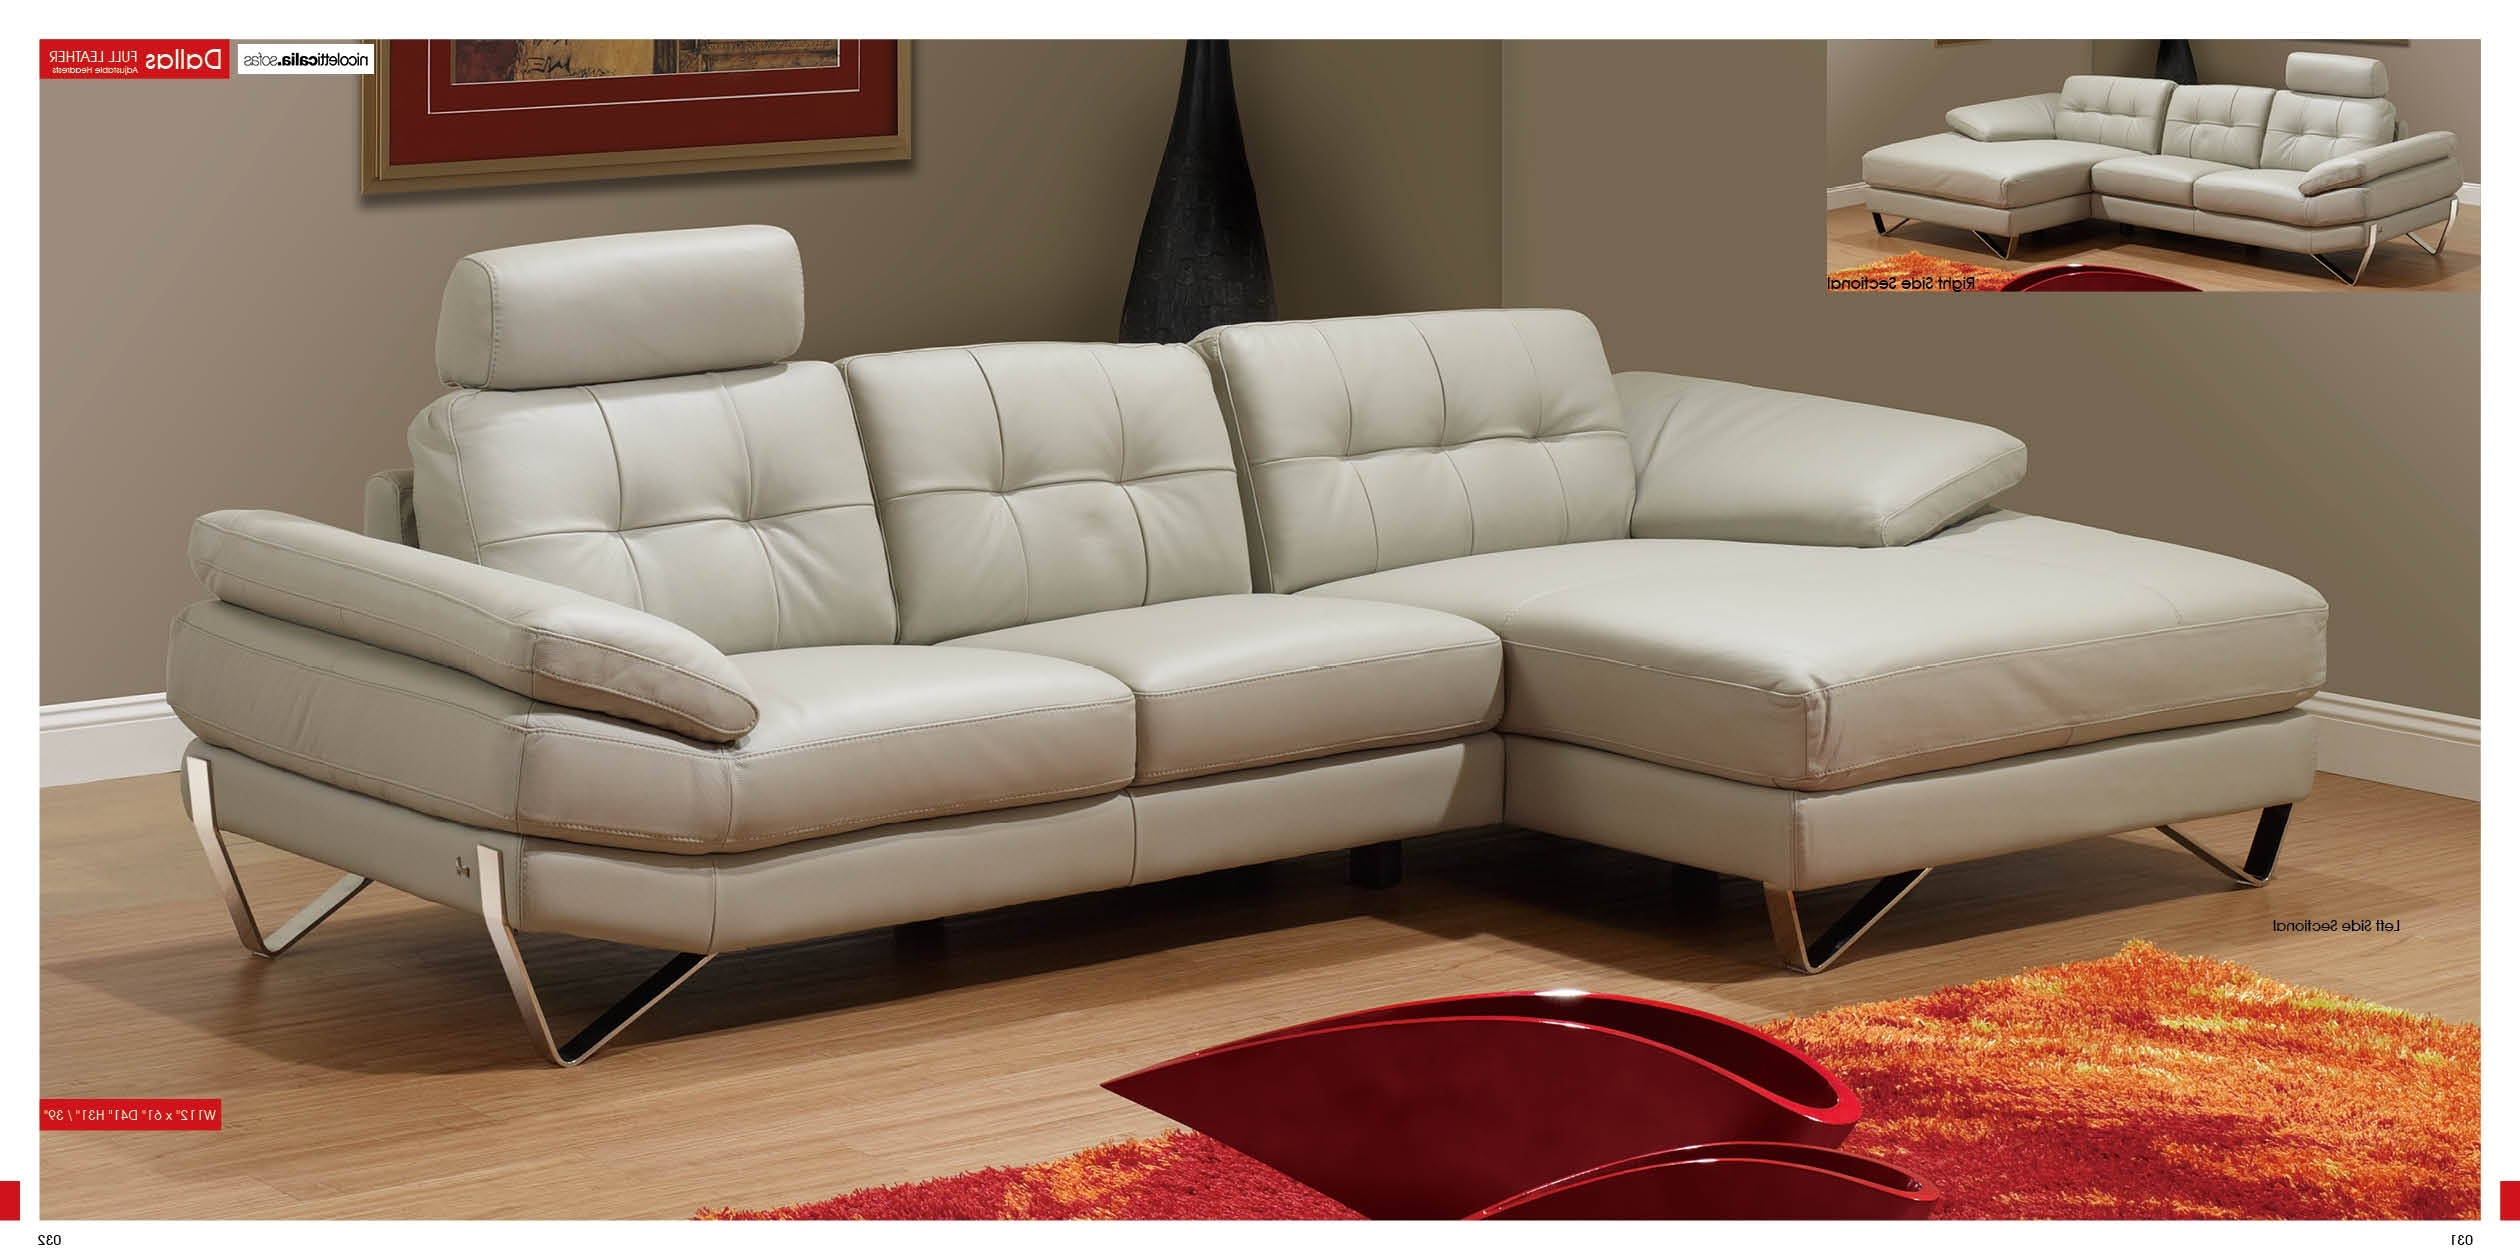 Fashionable Dallas Texas Sectional Sofas For Sectional Sofa Design: Comfort Sectional Sofas Dallas Dallas (View 6 of 15)